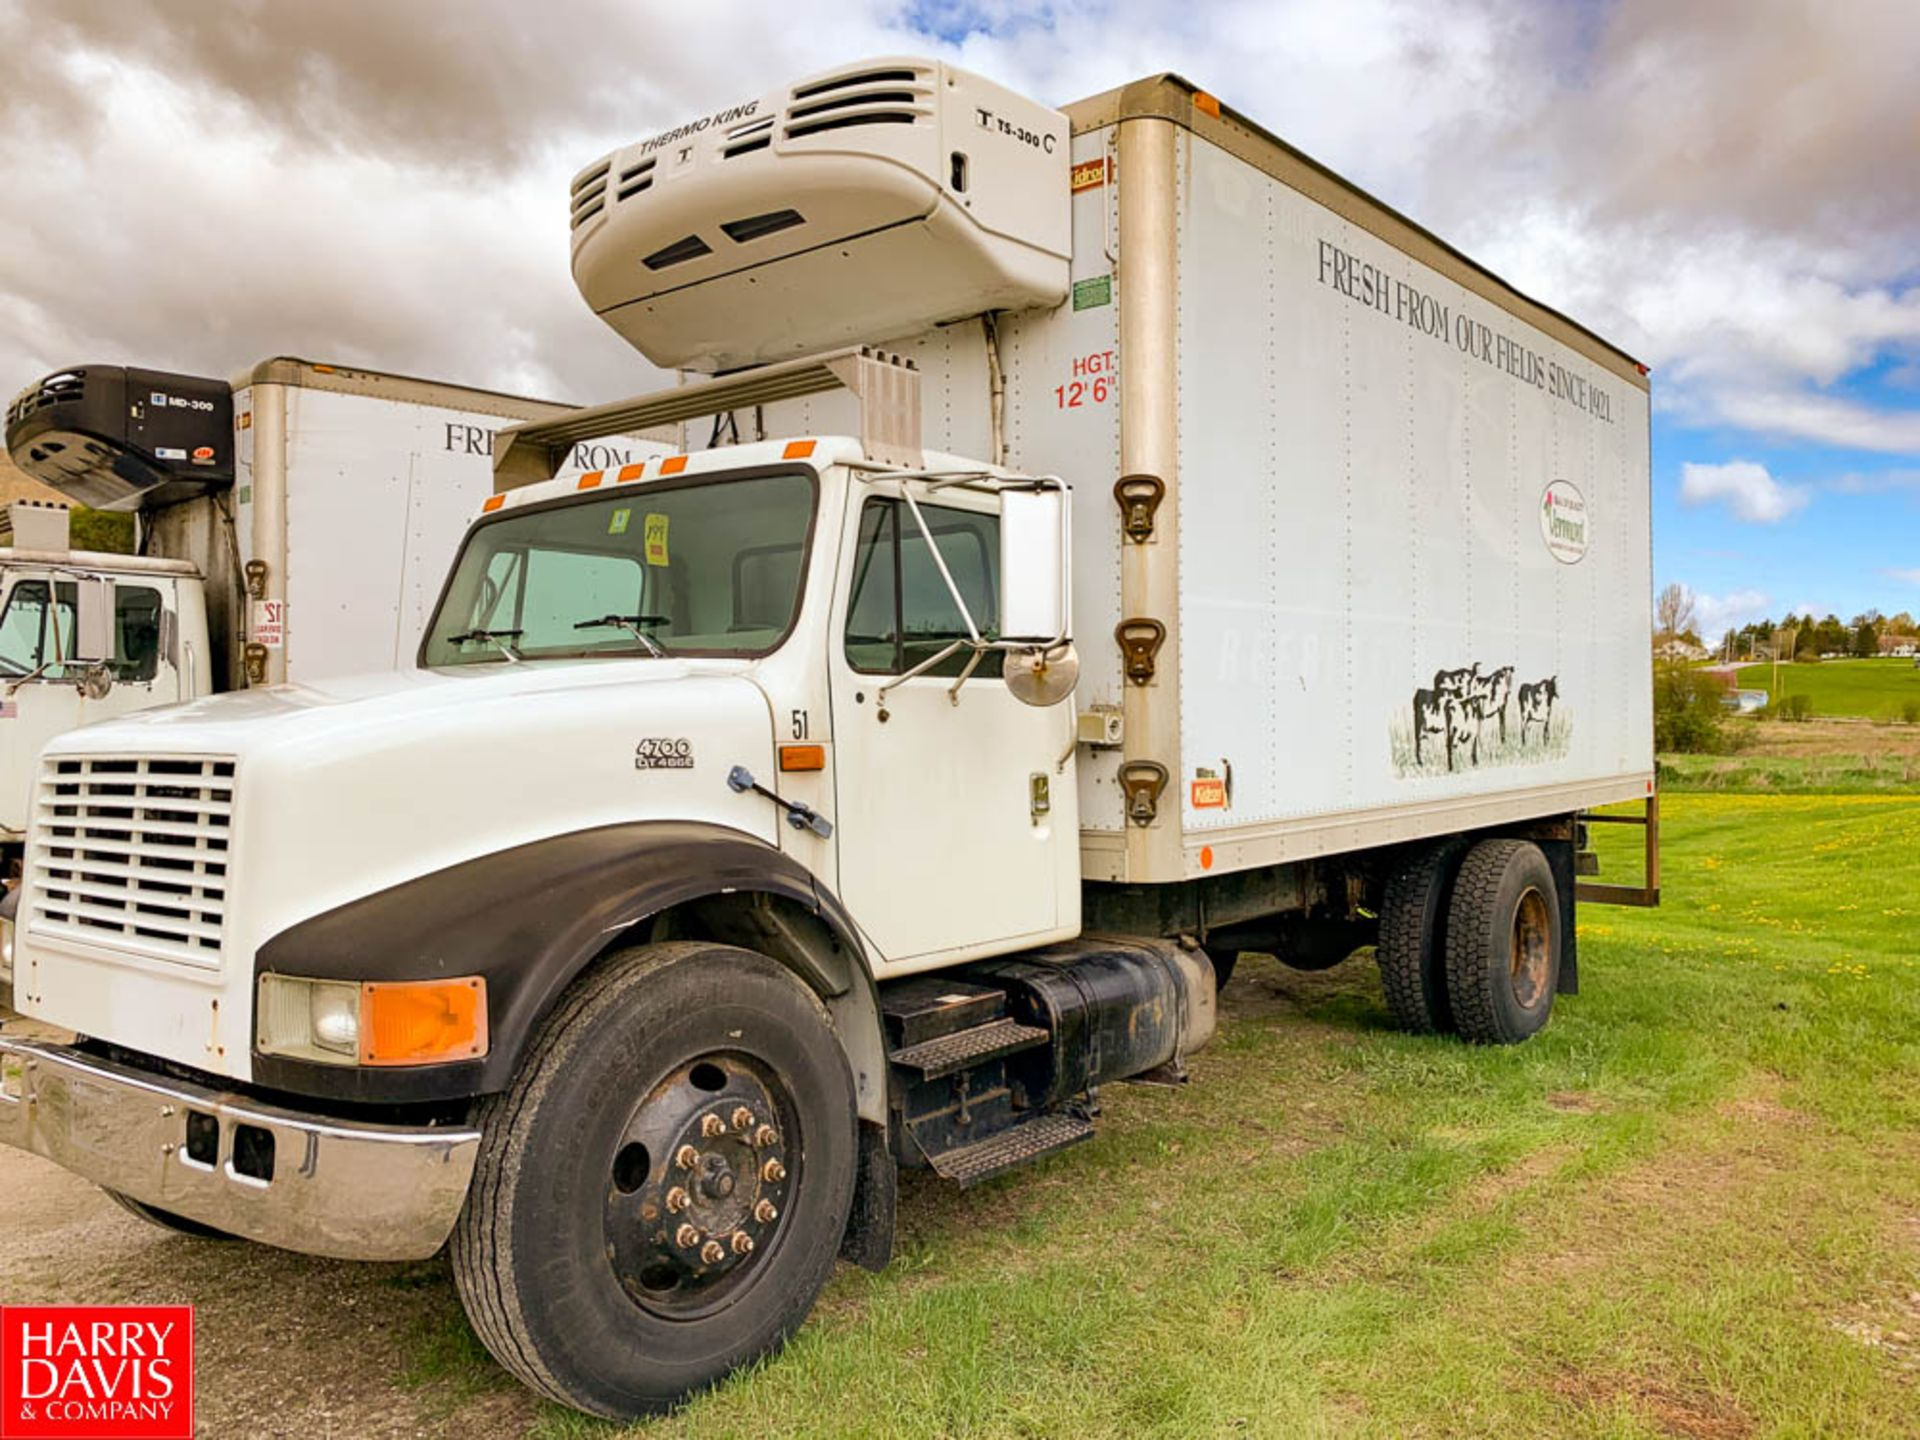 2000 International 18' Refrigerated Delivery Truck Model: 4700, 25,500 GVWR, with DT466E Diesel,